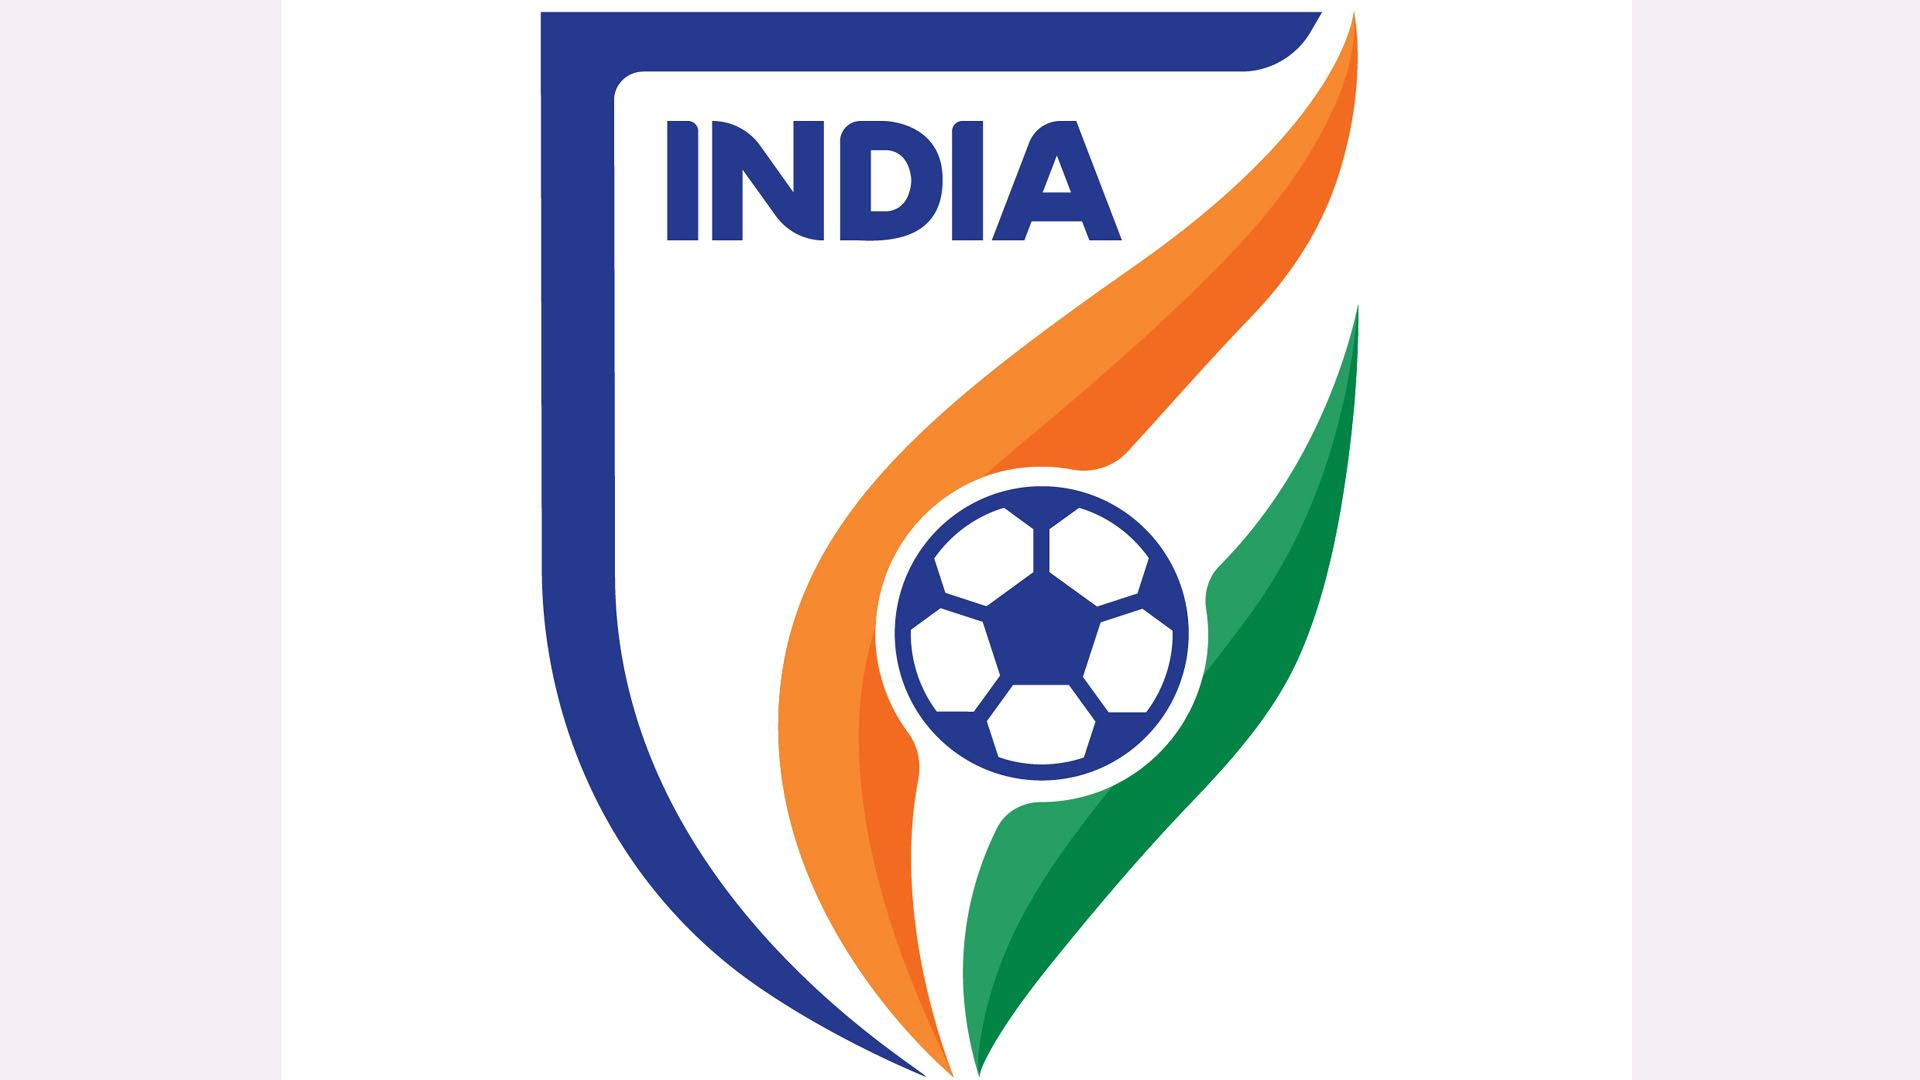 Sports Wallpapers: Indian Football Team Logo Hd Wallpapers